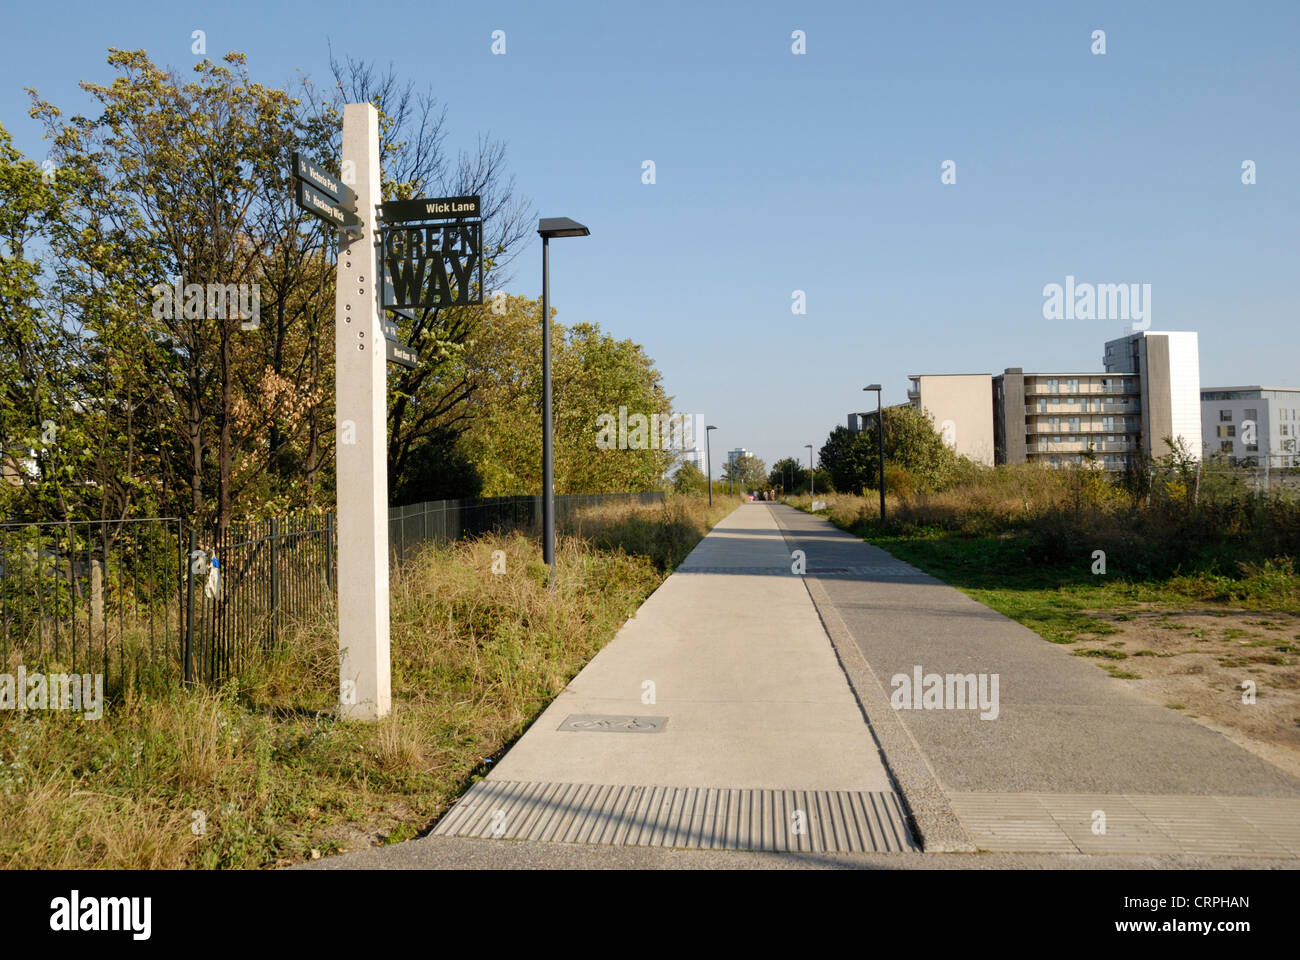 Signpost on the Greenway, a footpath and cycleway in East London running between Wick Lane in Bow to Royal Docks - Stock Image